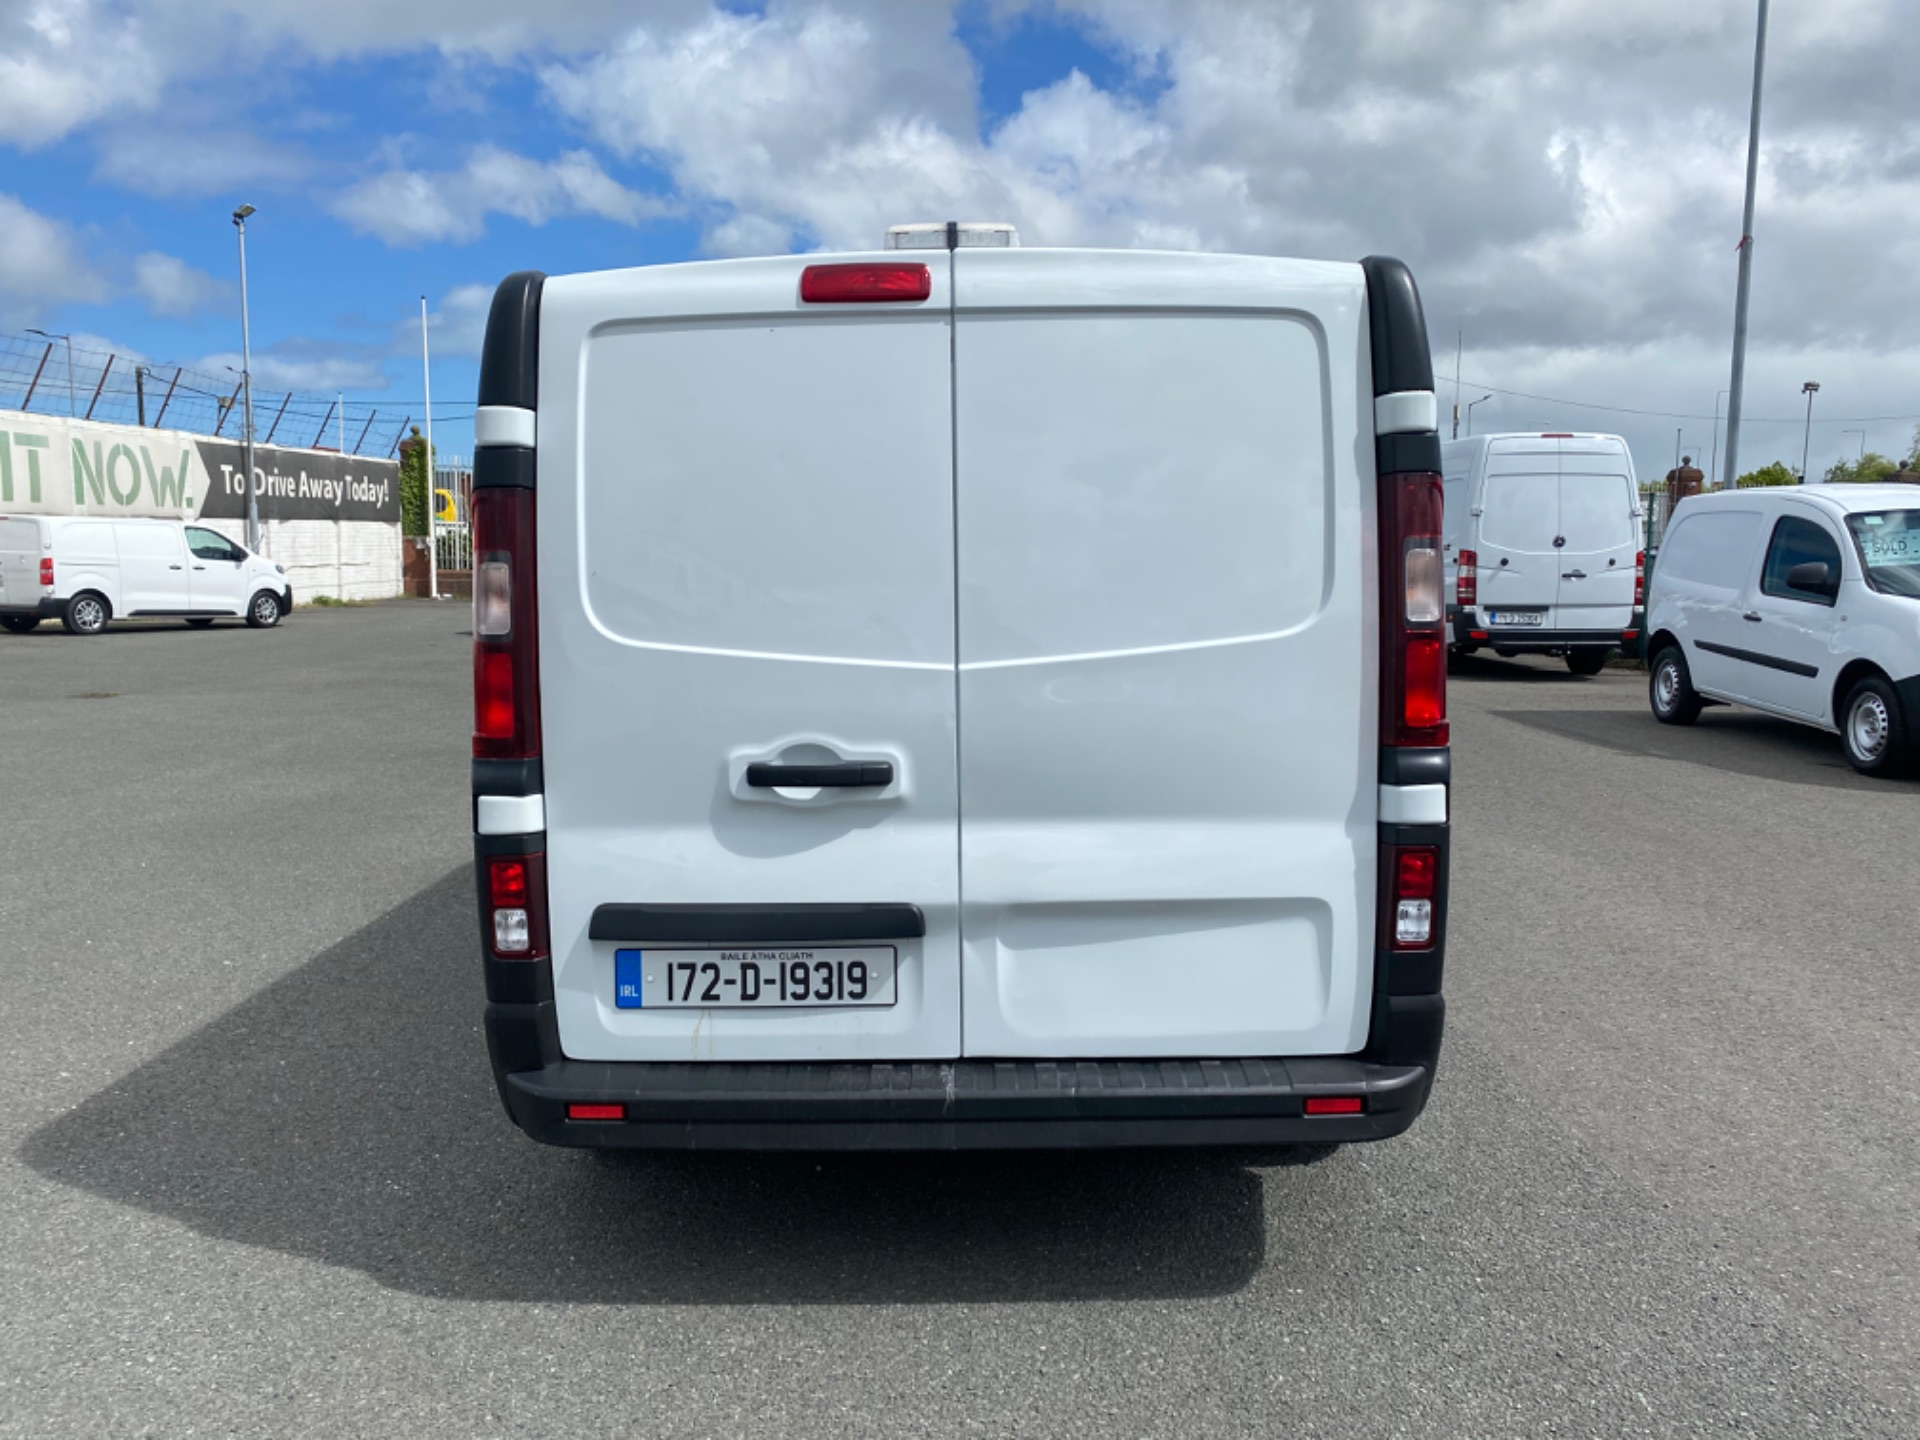 2017 Renault Trafic LL29 DCI 120 Business 3DR (172D19319) Image 6